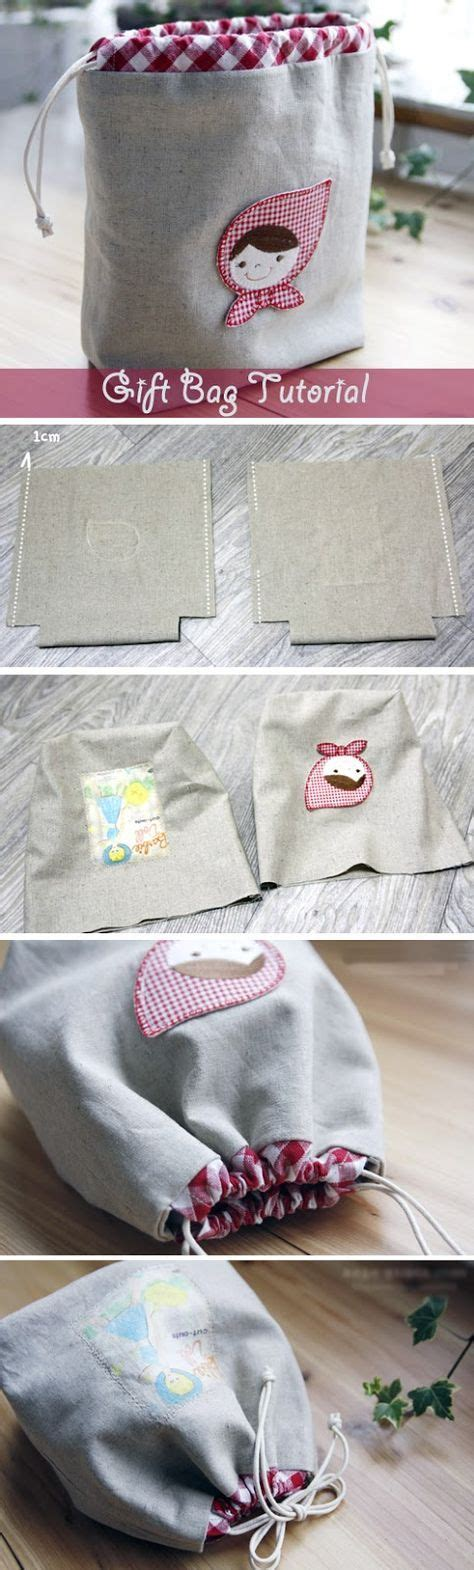 pattern to make gift bags drawstring bag tutorial gift bags idea drawstring pouch